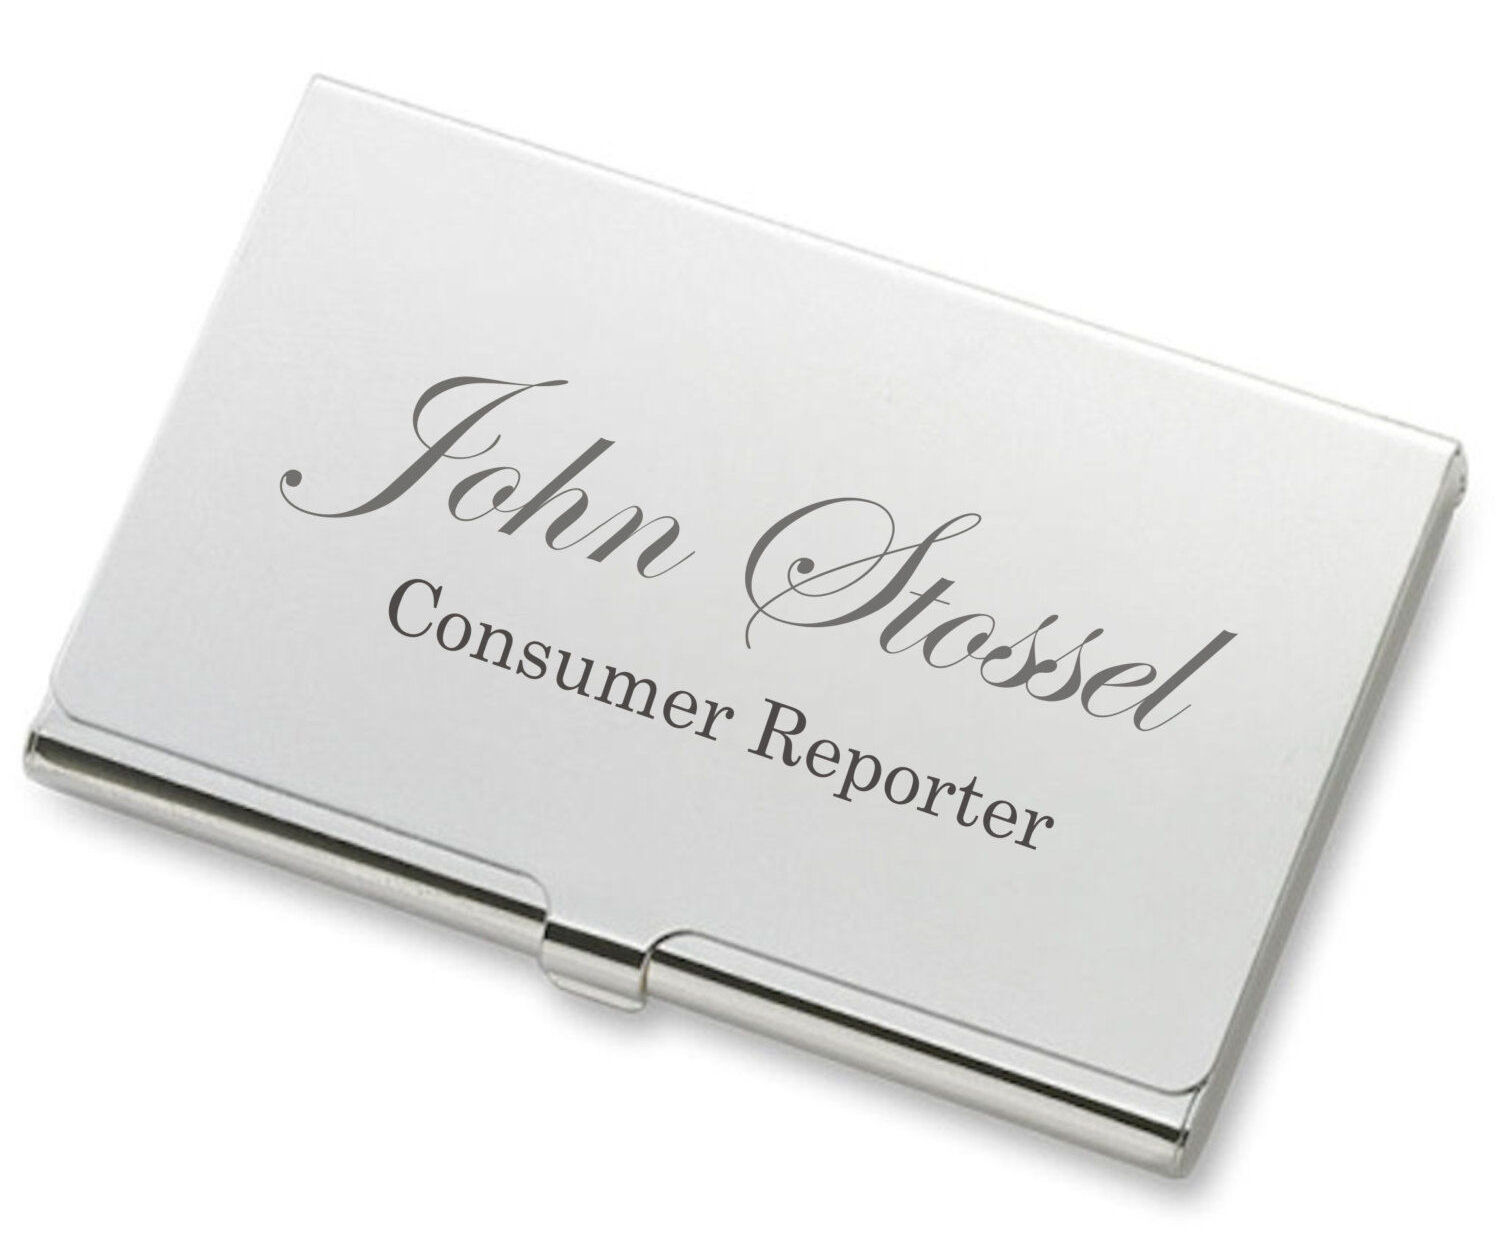 personalized high polished shiny silver business card holder custom engraved - Silver Business Card Holder